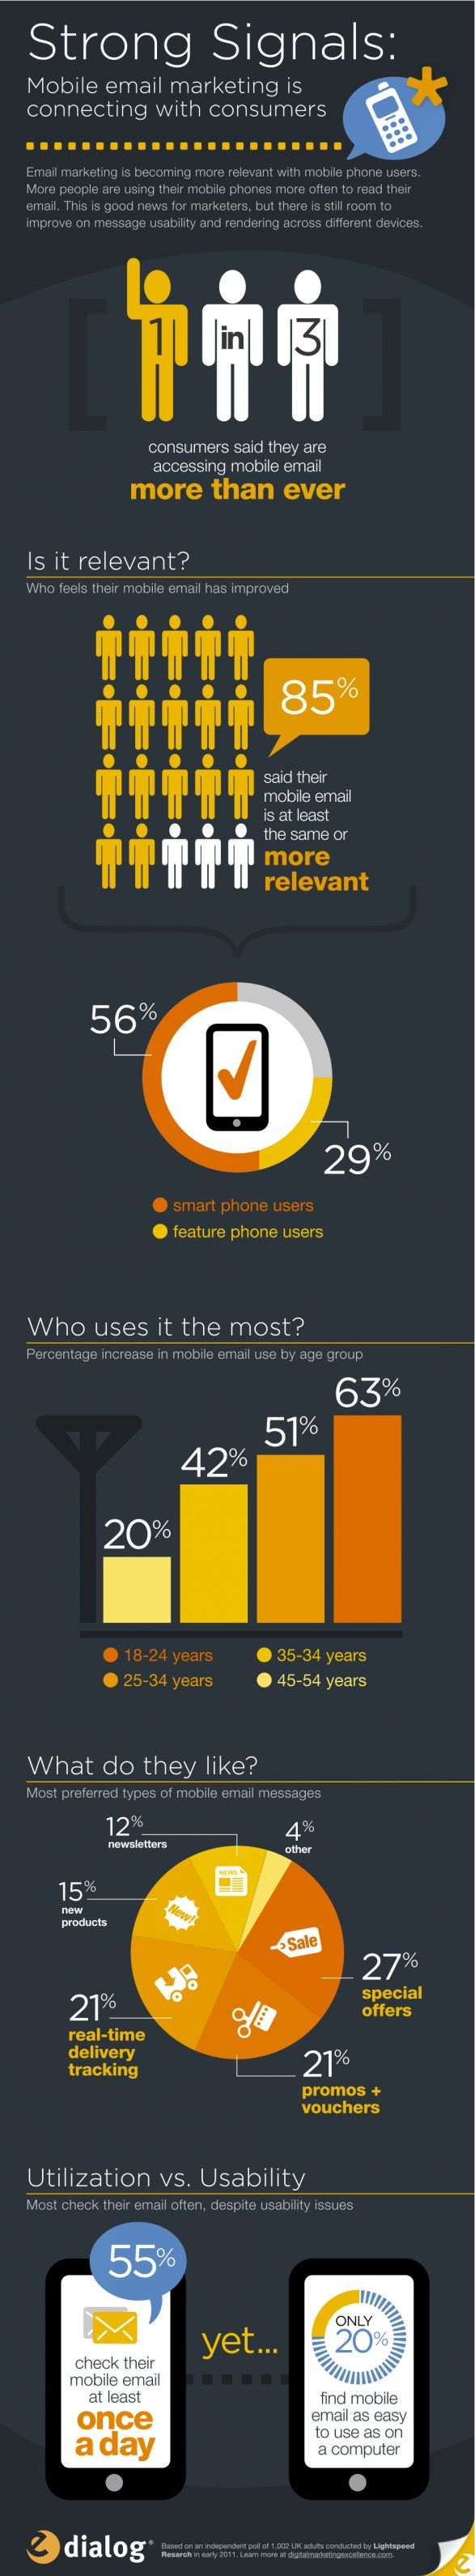 The Rise of Mobile Email Marketing | http://www.logmycalls.com: Marketing Stats, Digital Marketing, Social Media, Email Marketing, Socialmedia, Mobiles Email, Mobiles Marketing, Marketing Infographic, Emailmarketing